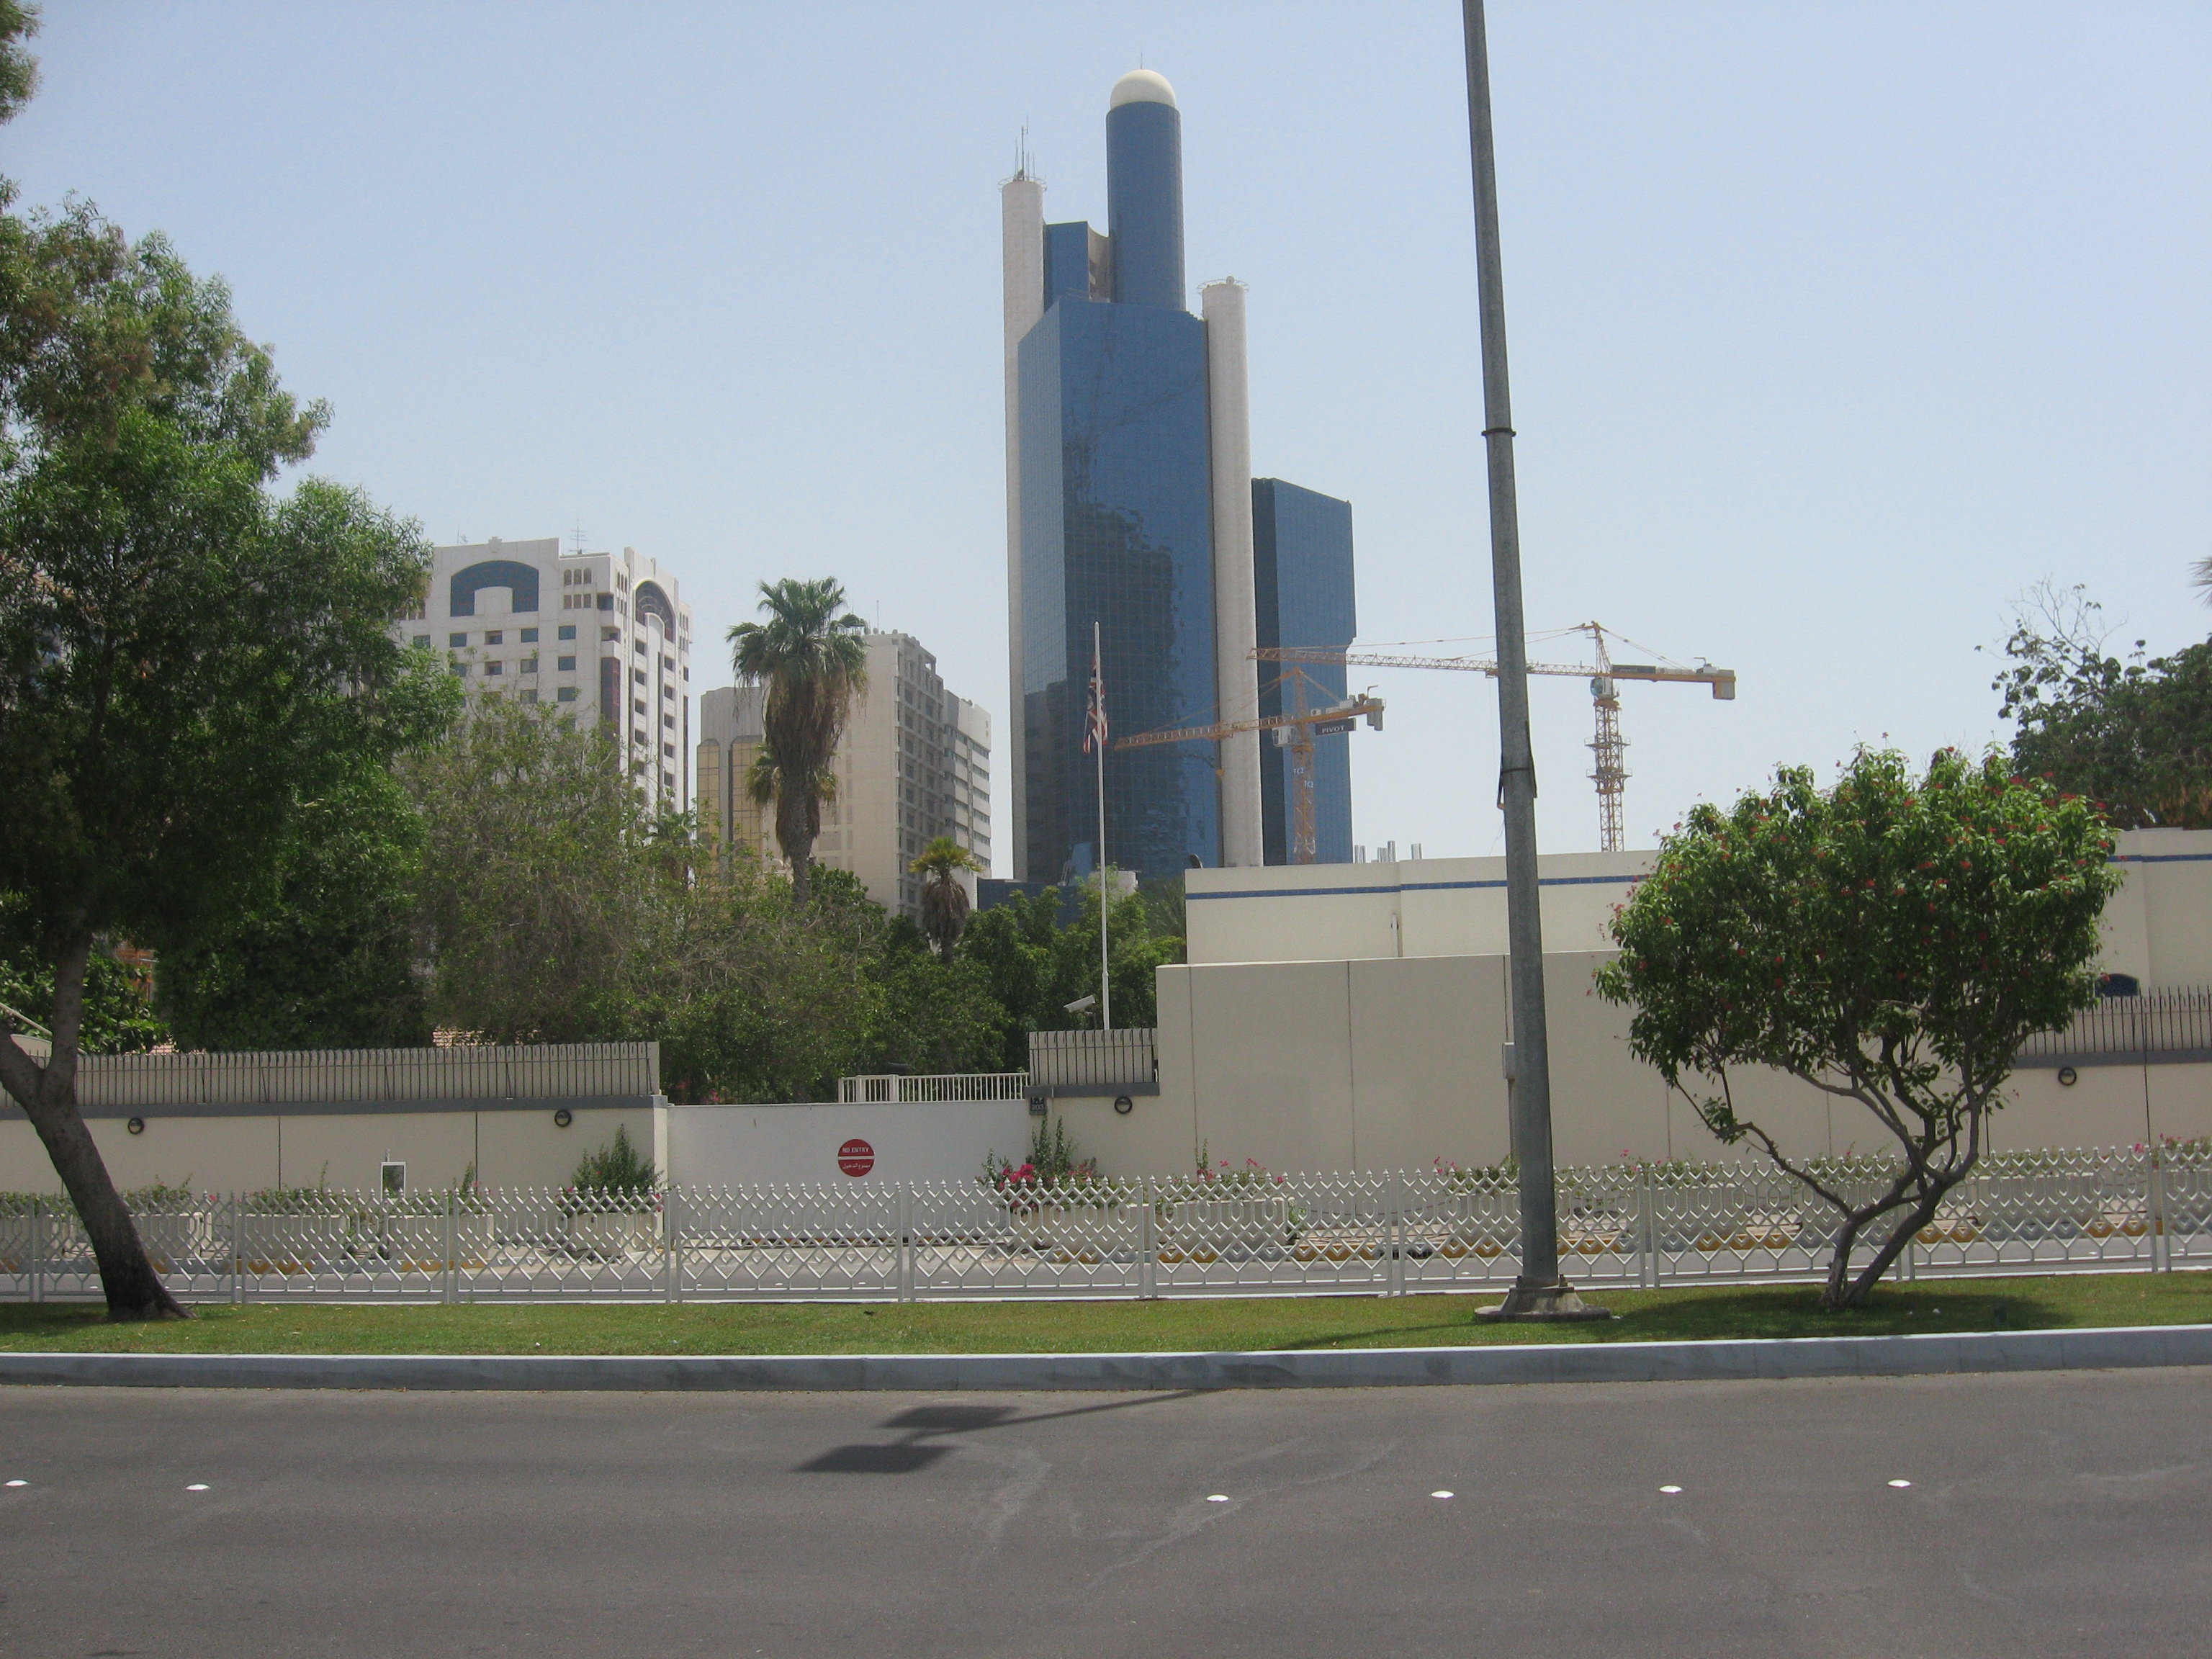 FileBritish Embassy In Abu Dhabi JPG Wikimedia Commons - Us embassy abu dhabi location map